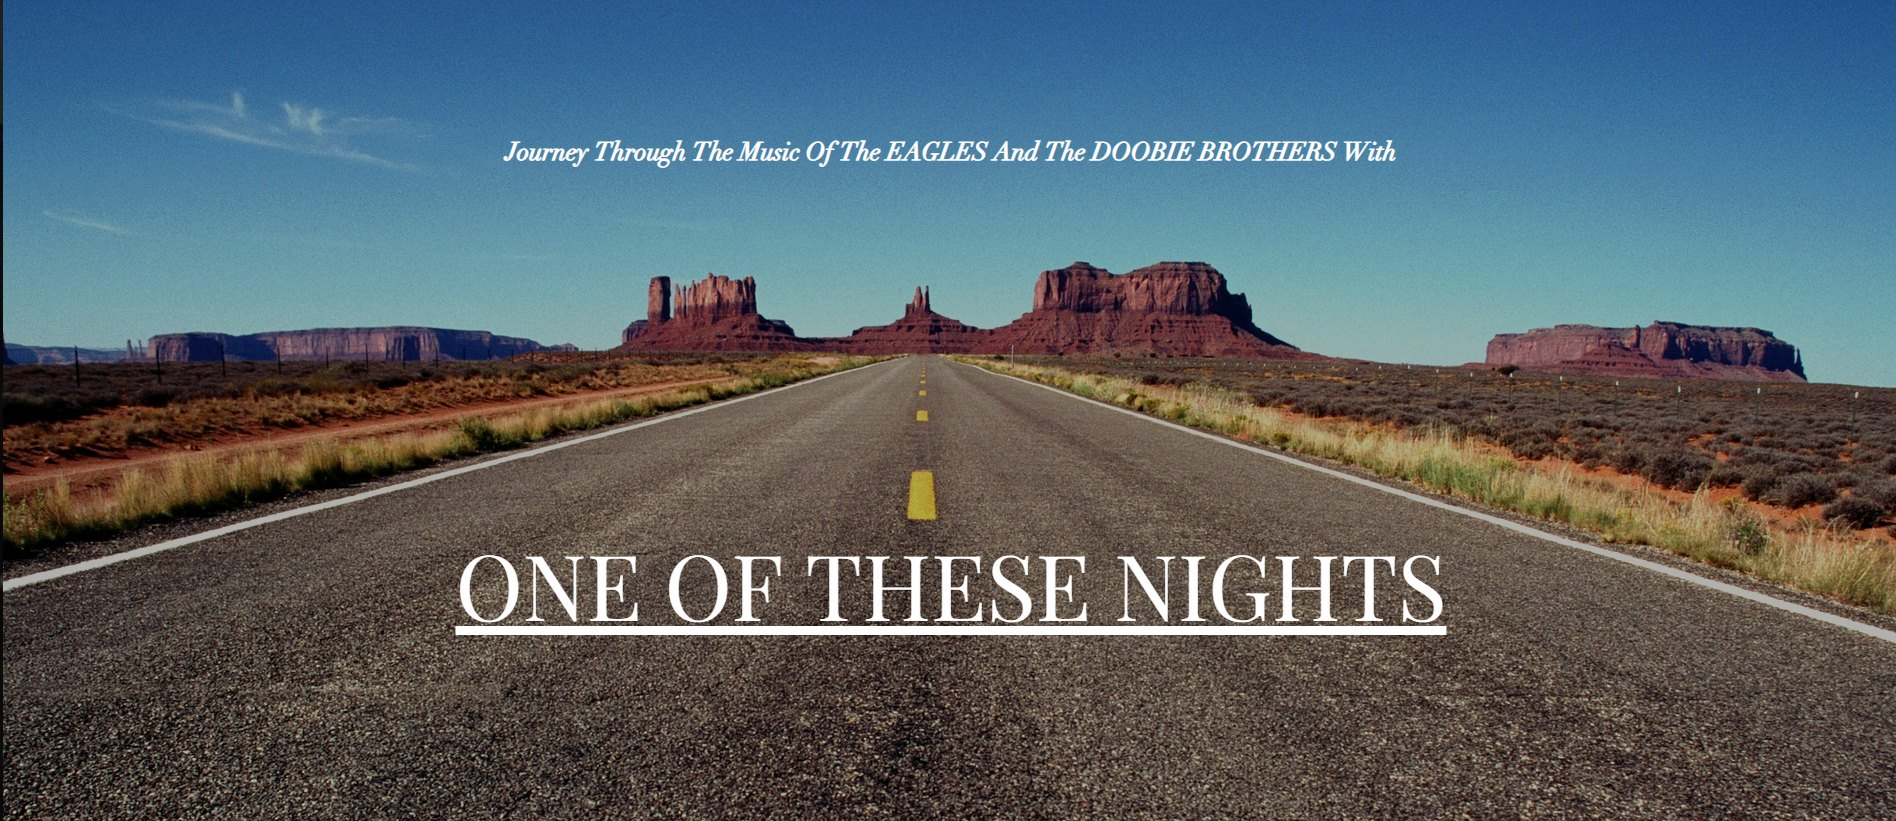 WALLSEND DIGGERS MEZZ BAR- Eagles and Doobie Brothers tribute show